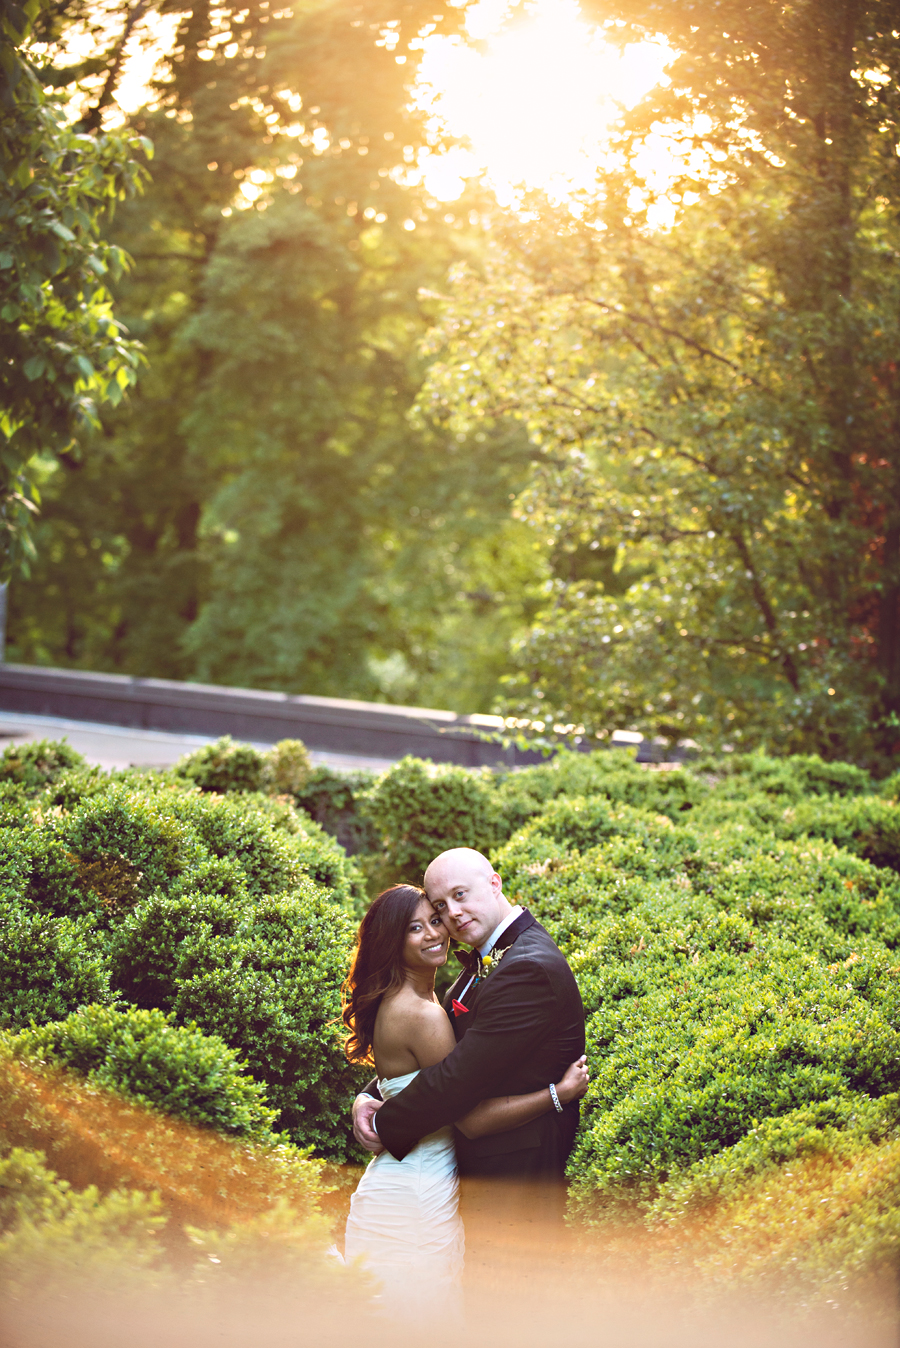 sunlit-garden-maze-wedding-portrait.jpg